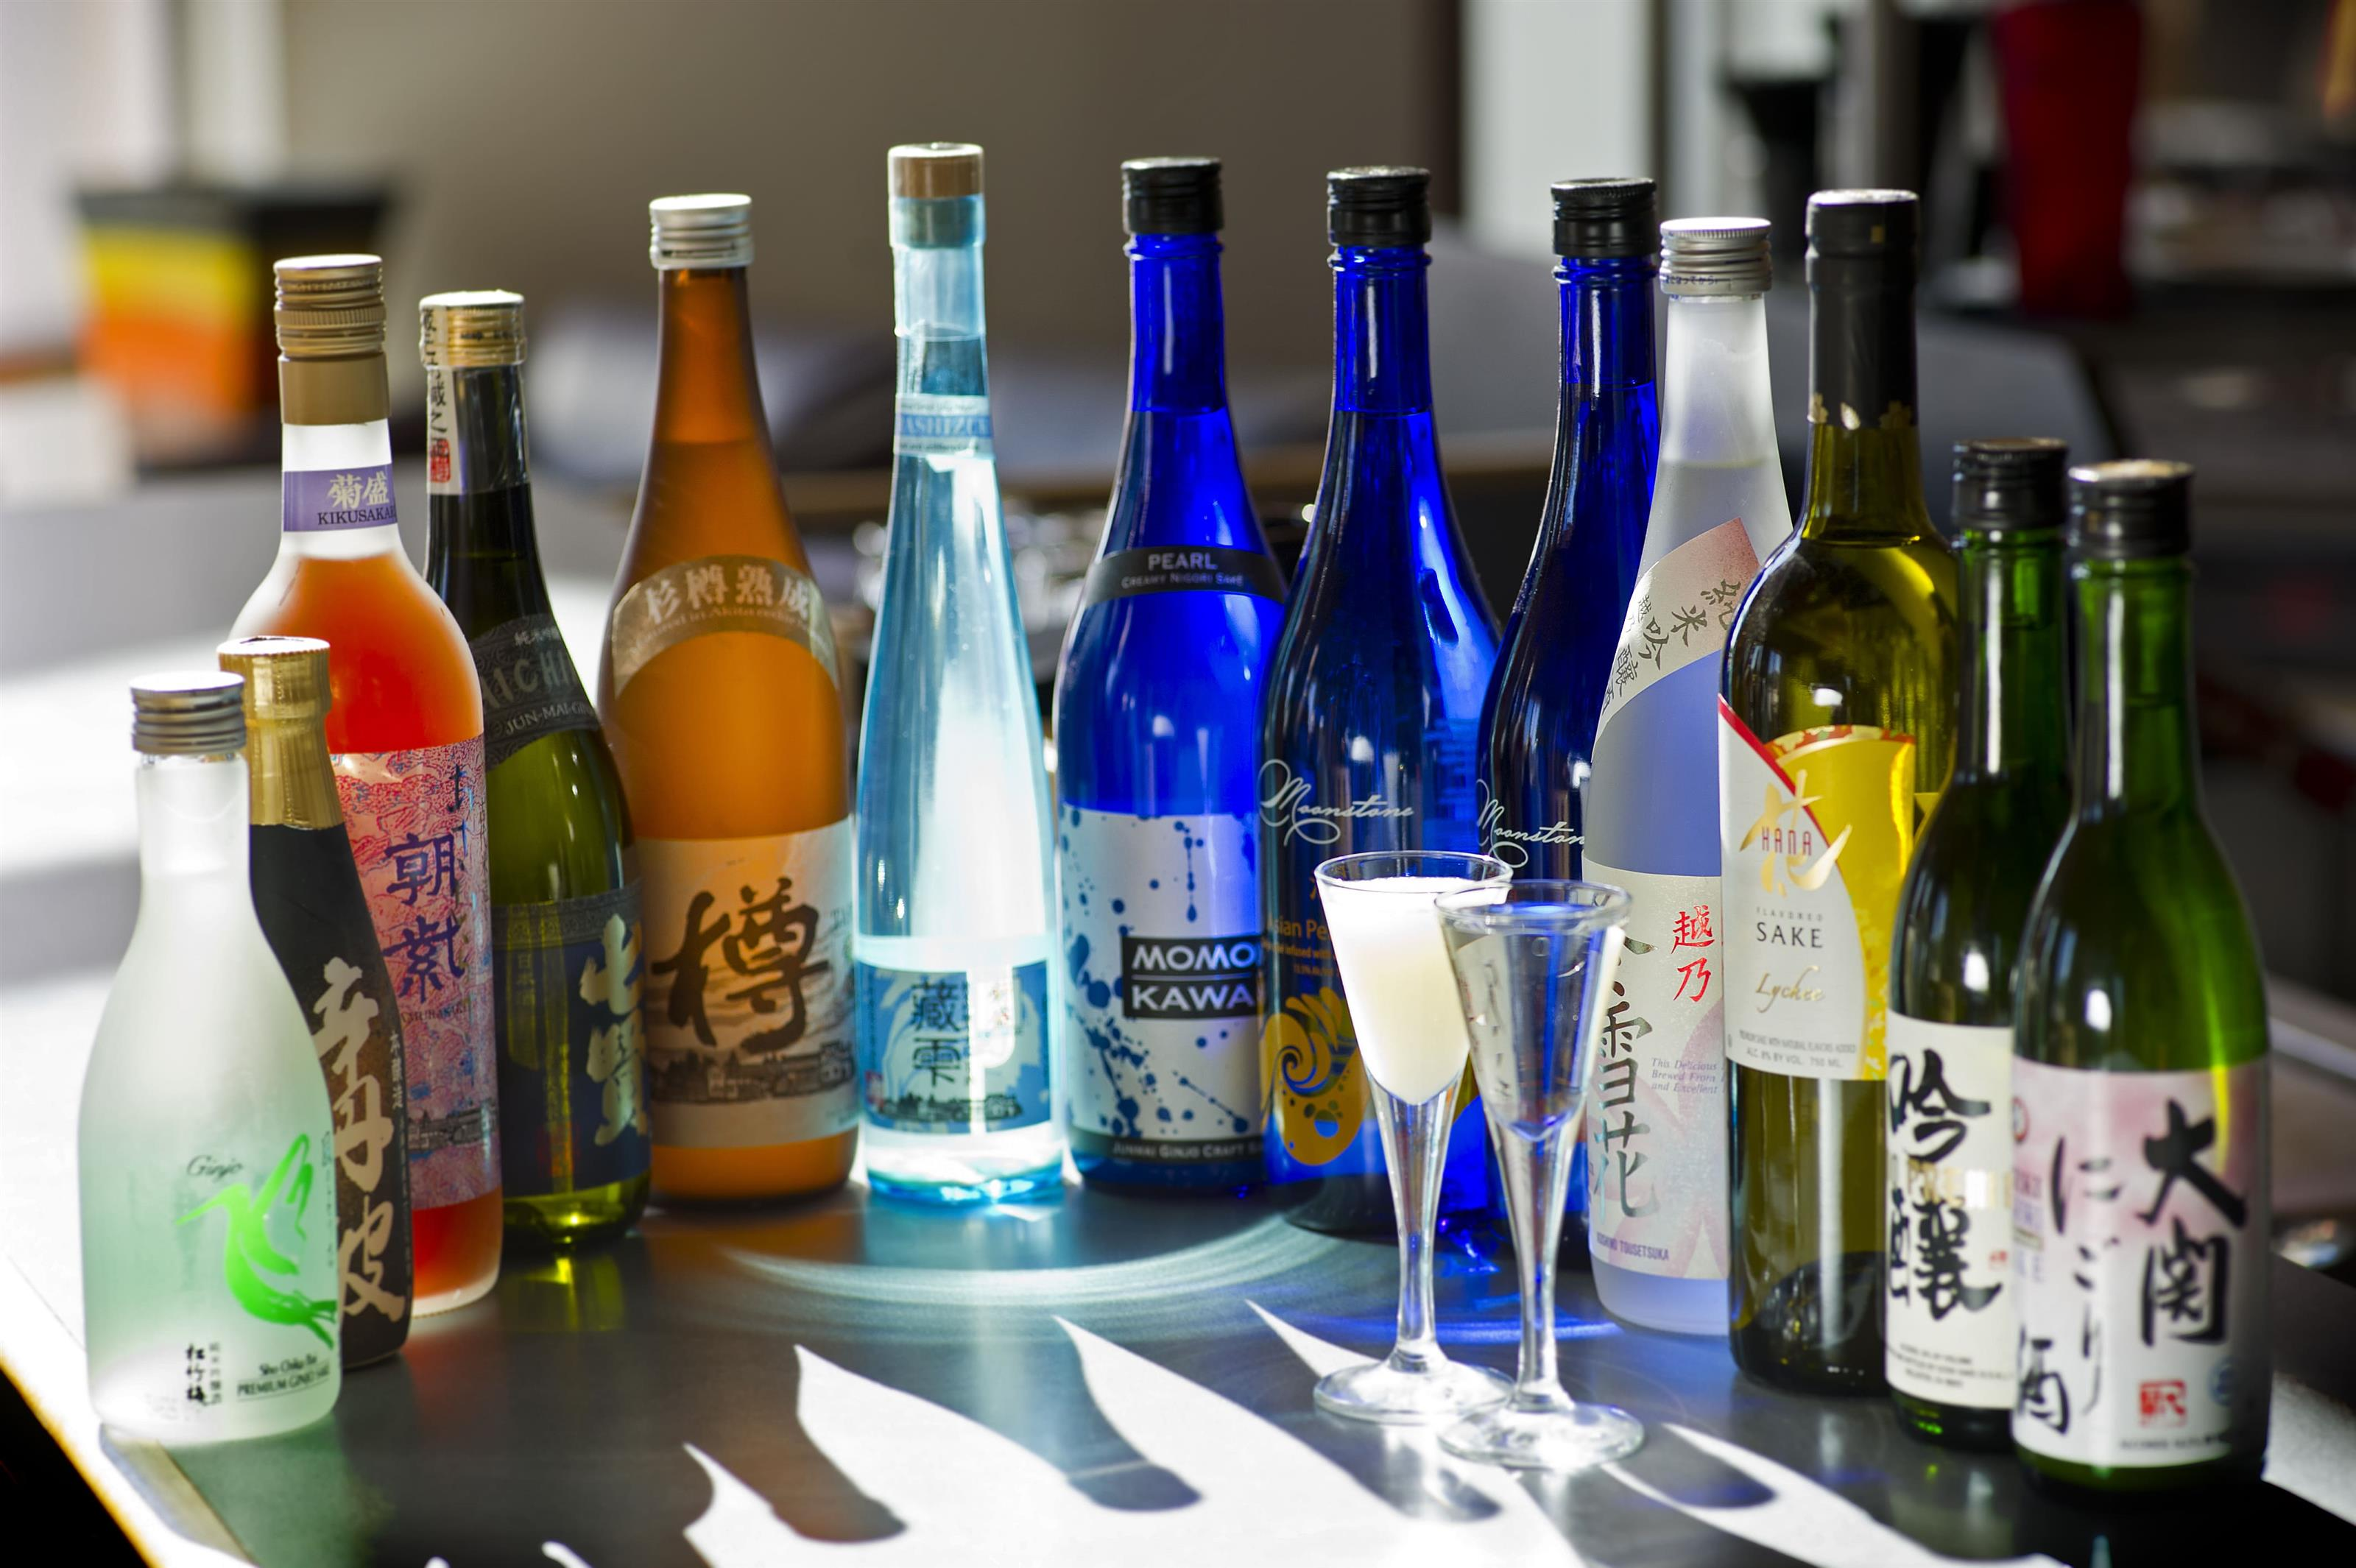 various bottles of wines, liquors and sake with 2 glasses filled